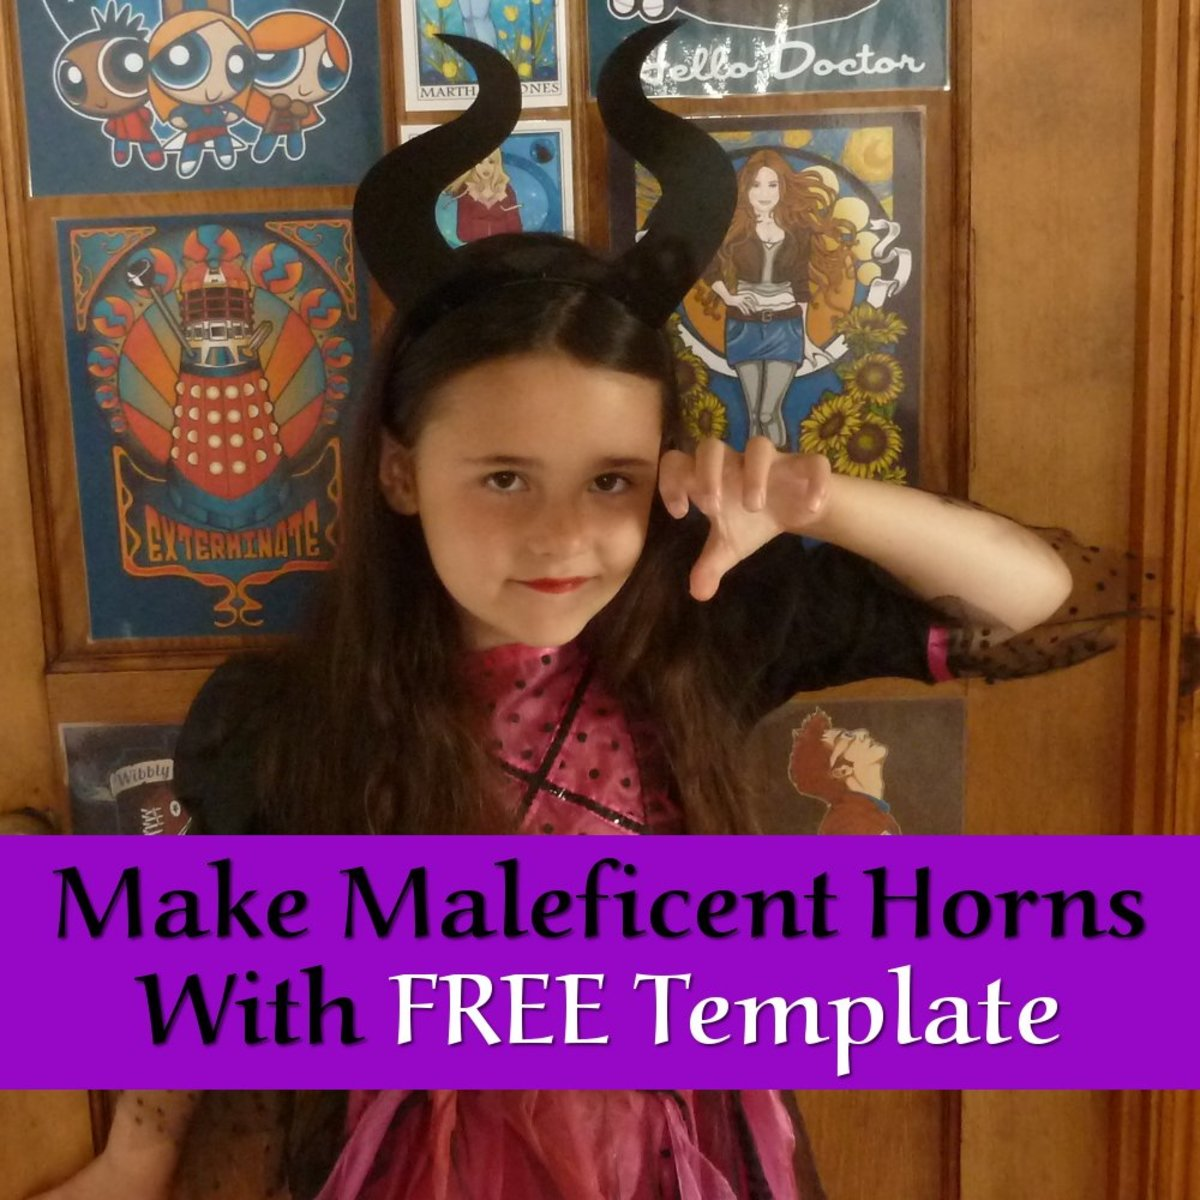 How to Make Maleficent Horns With Free Template | Holidappy